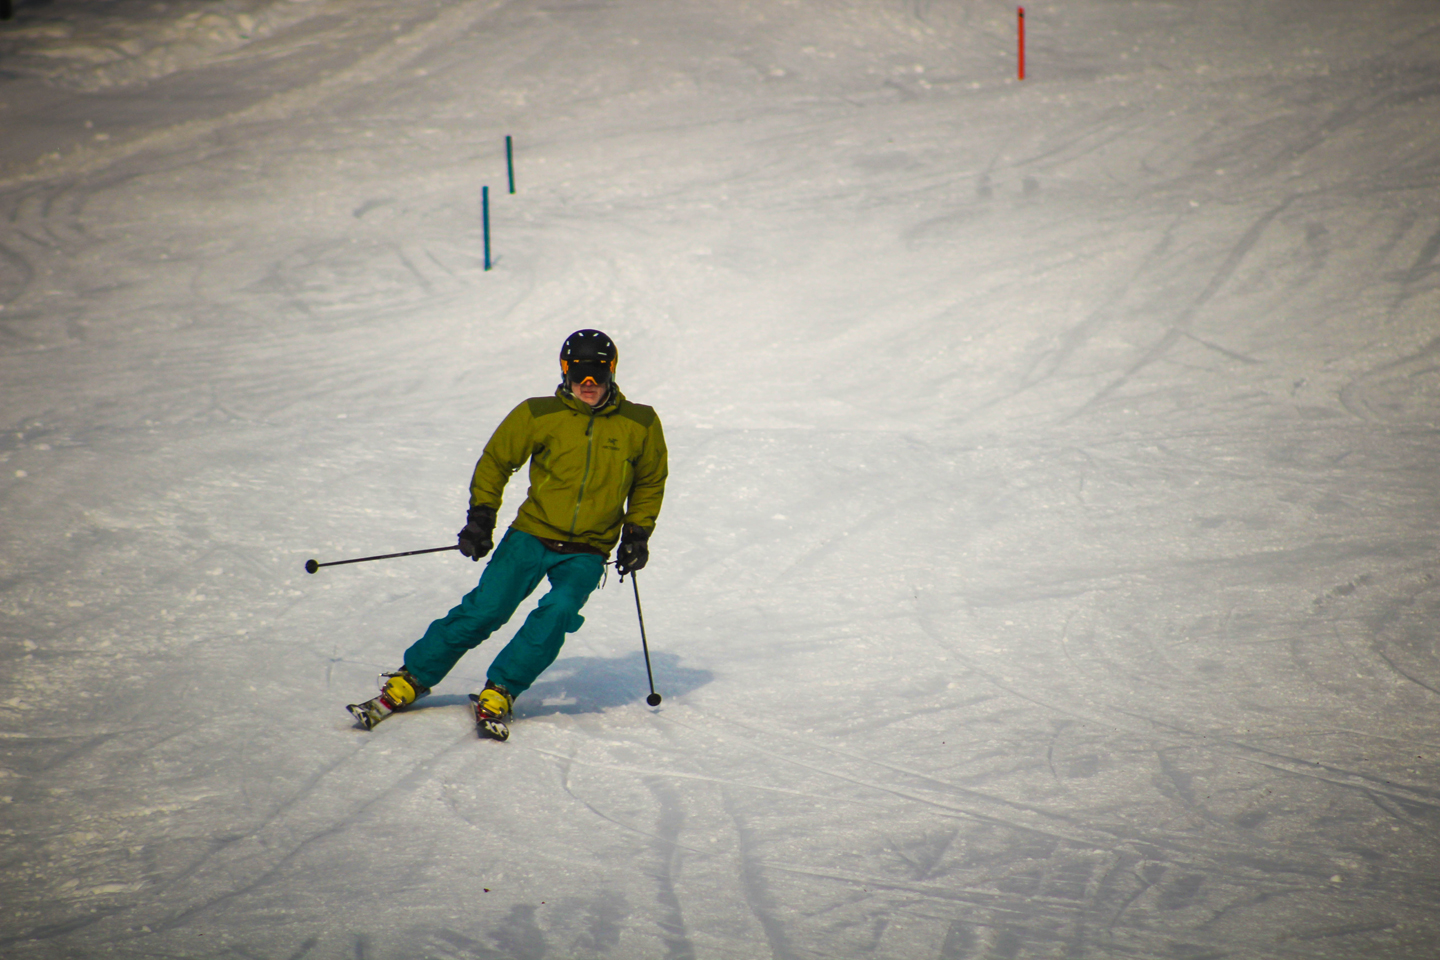 skier in green outfit